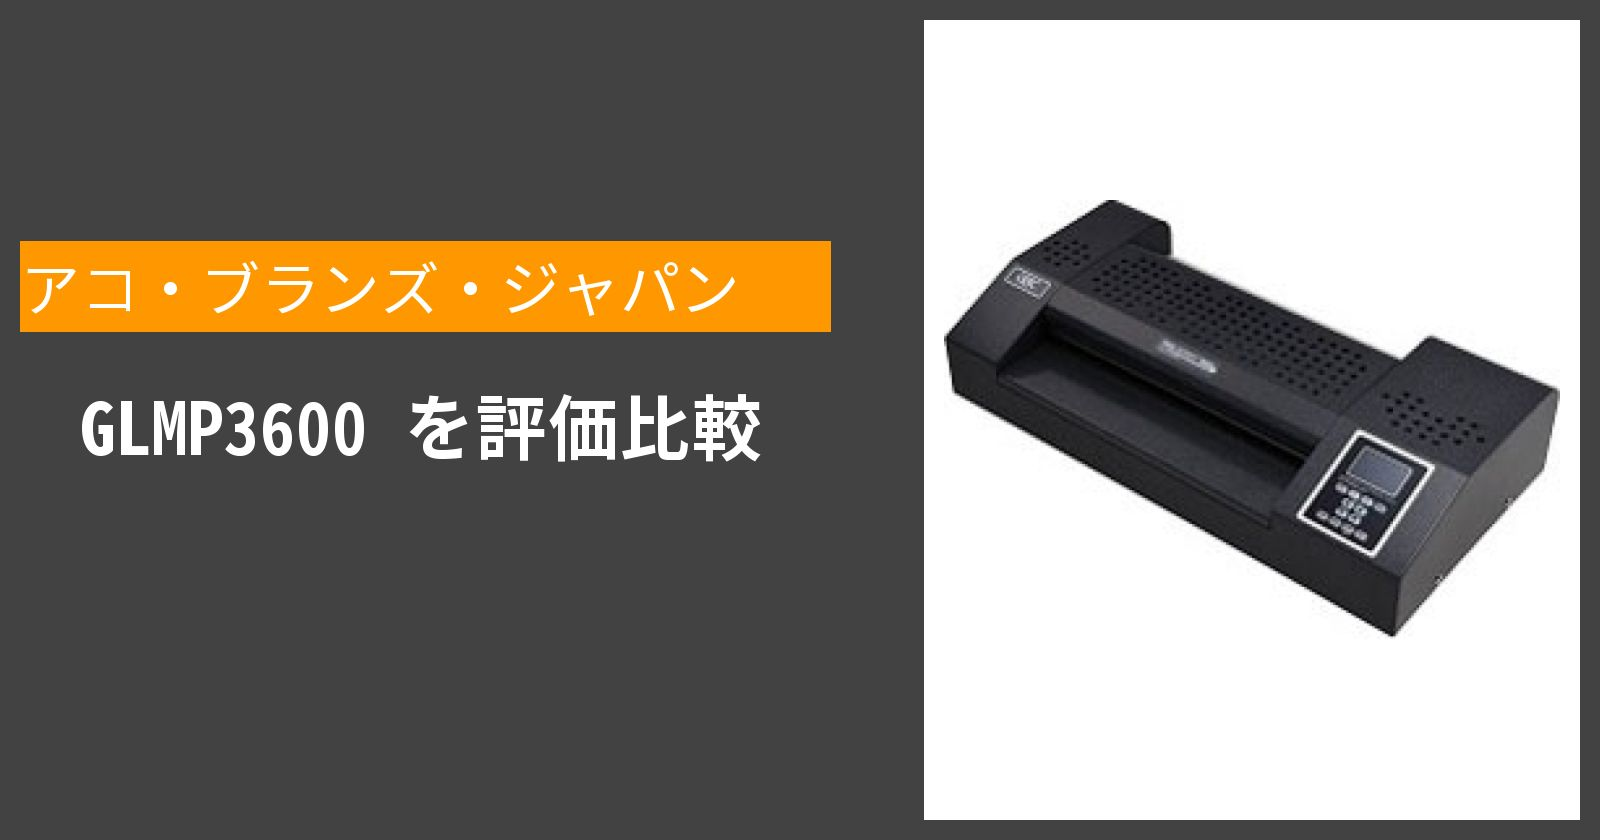 GLMP3600を徹底評価